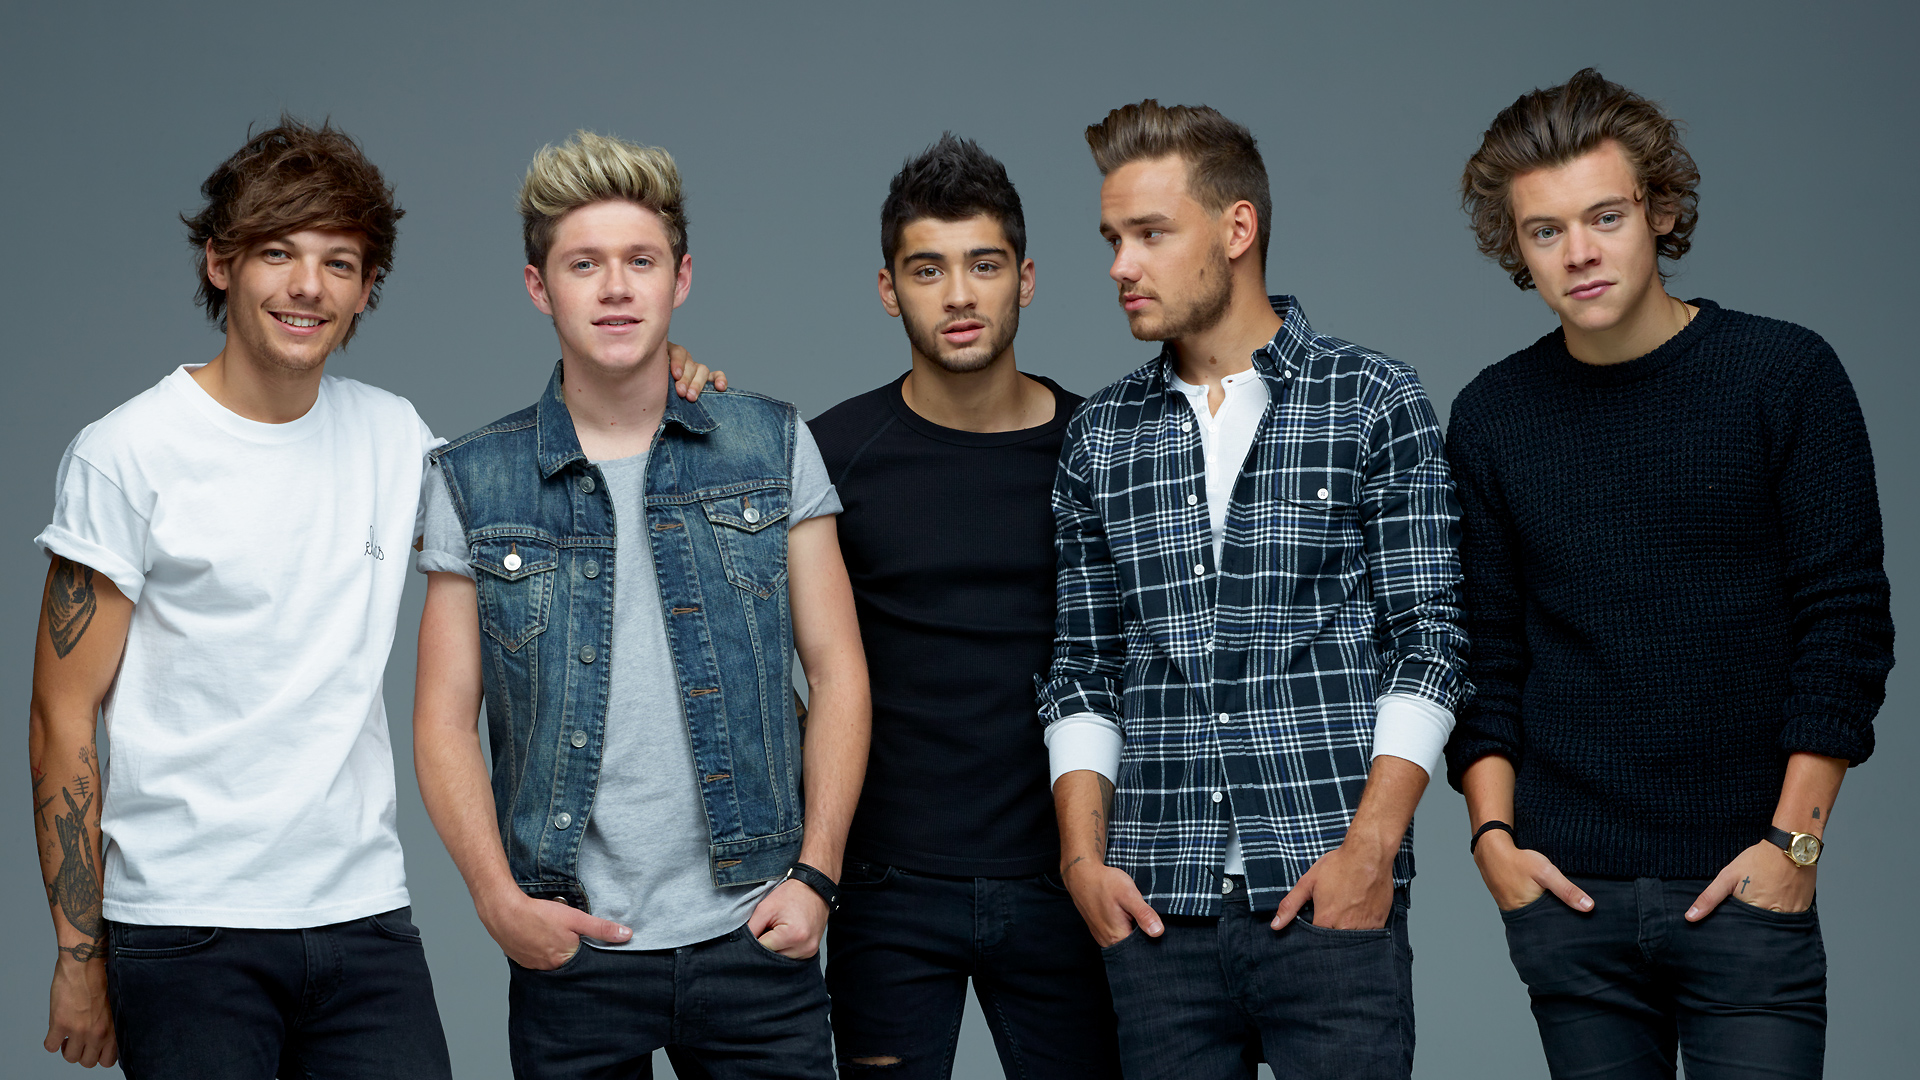 Free Download One Direction Desktop Wallpaper 1920x1080 For Your